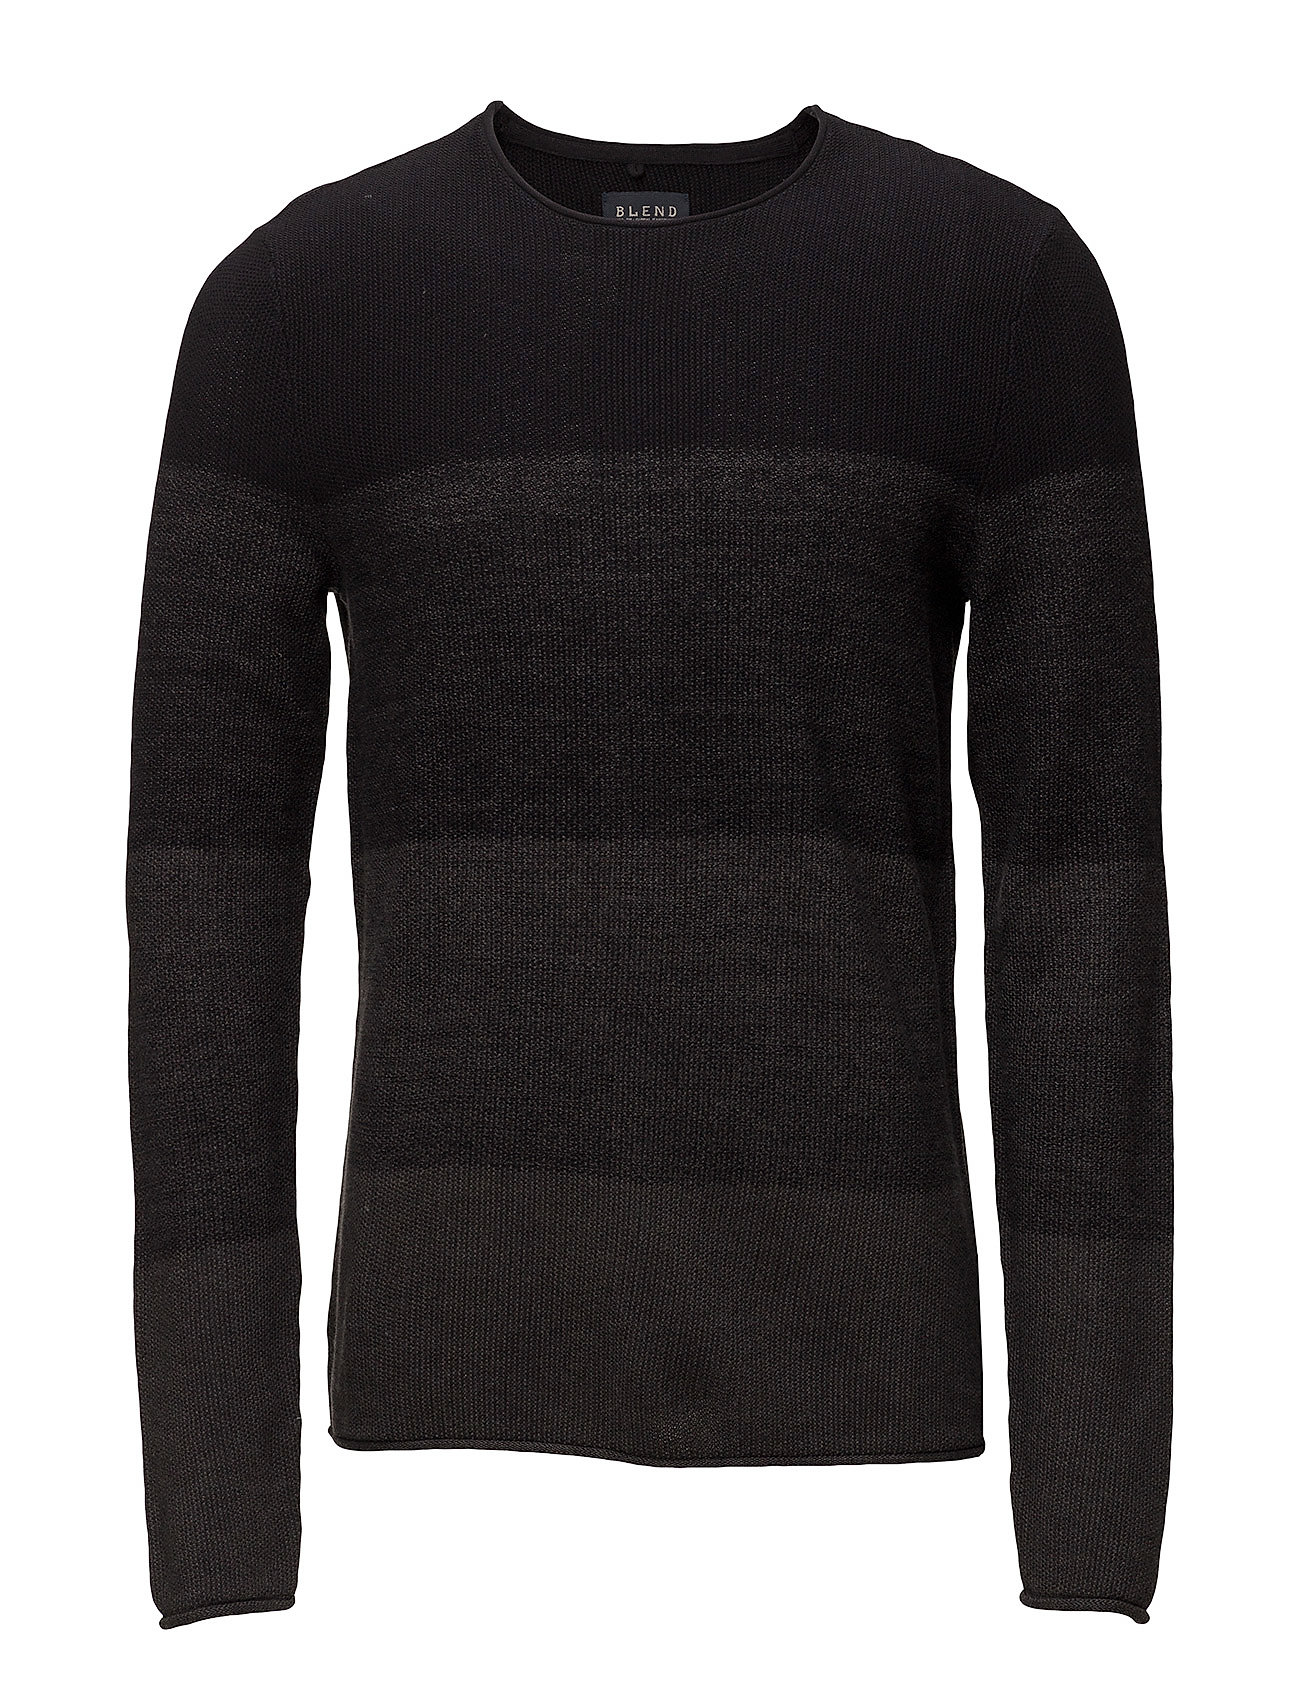 black £22 Pullover Blend 75 Knitwear 65dqwd0x